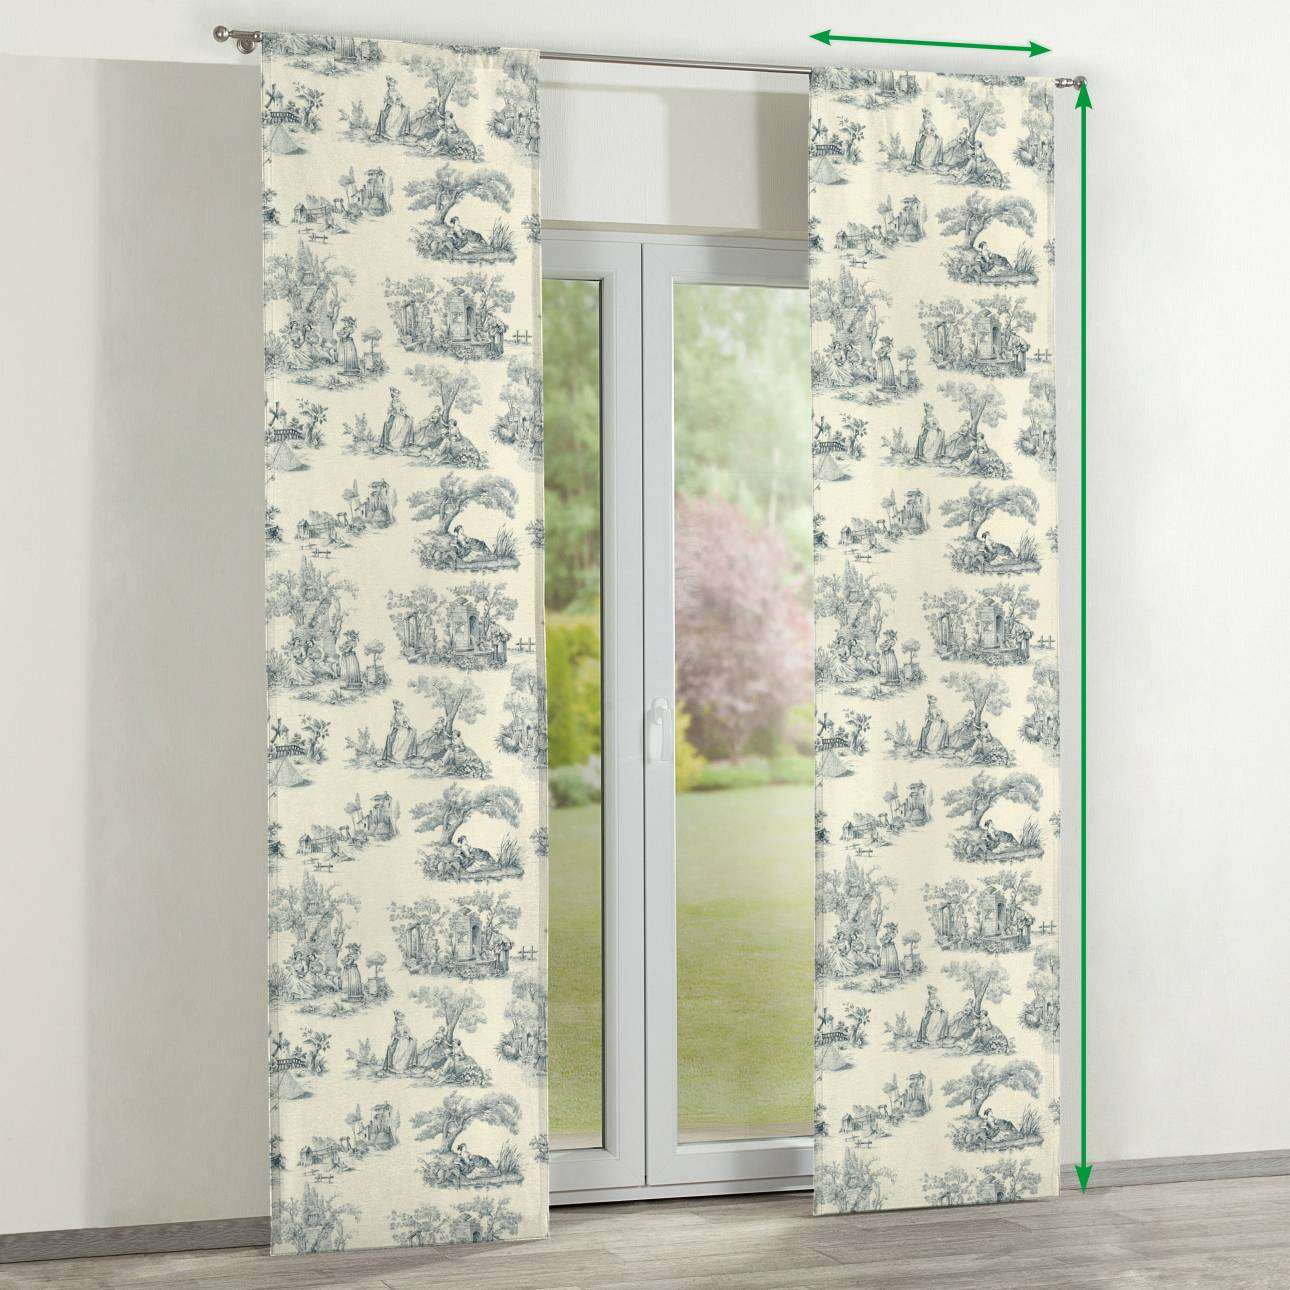 Slot panel curtains – Set of 2 in collection Avinon, fabric: 132-66